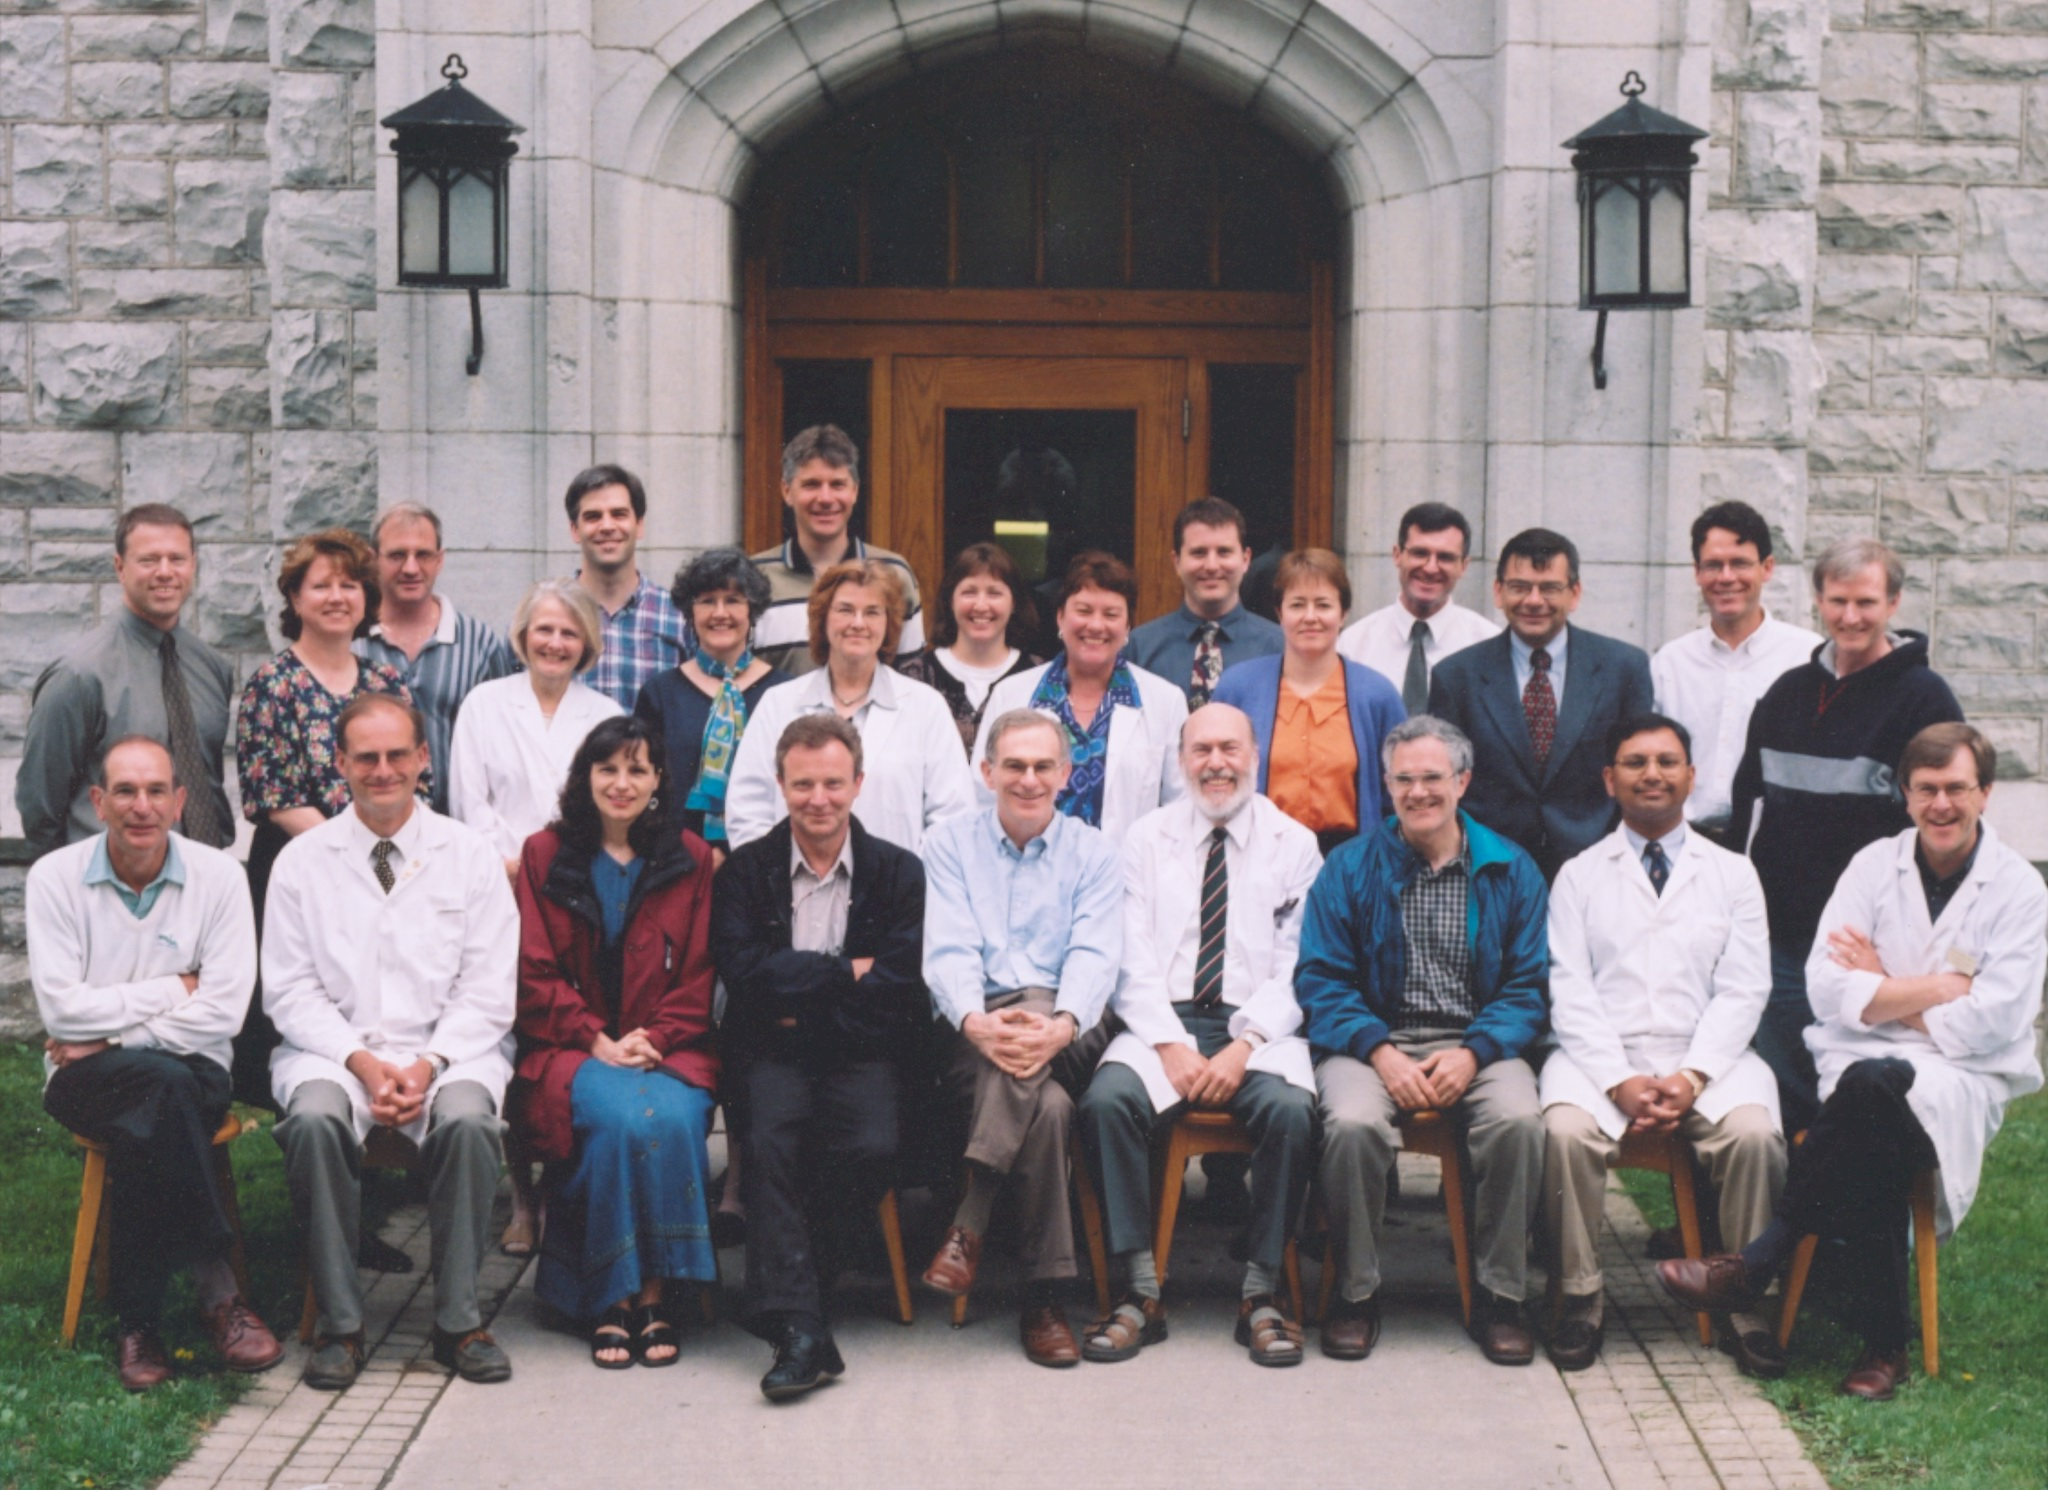 2001 Faculty Group Photo